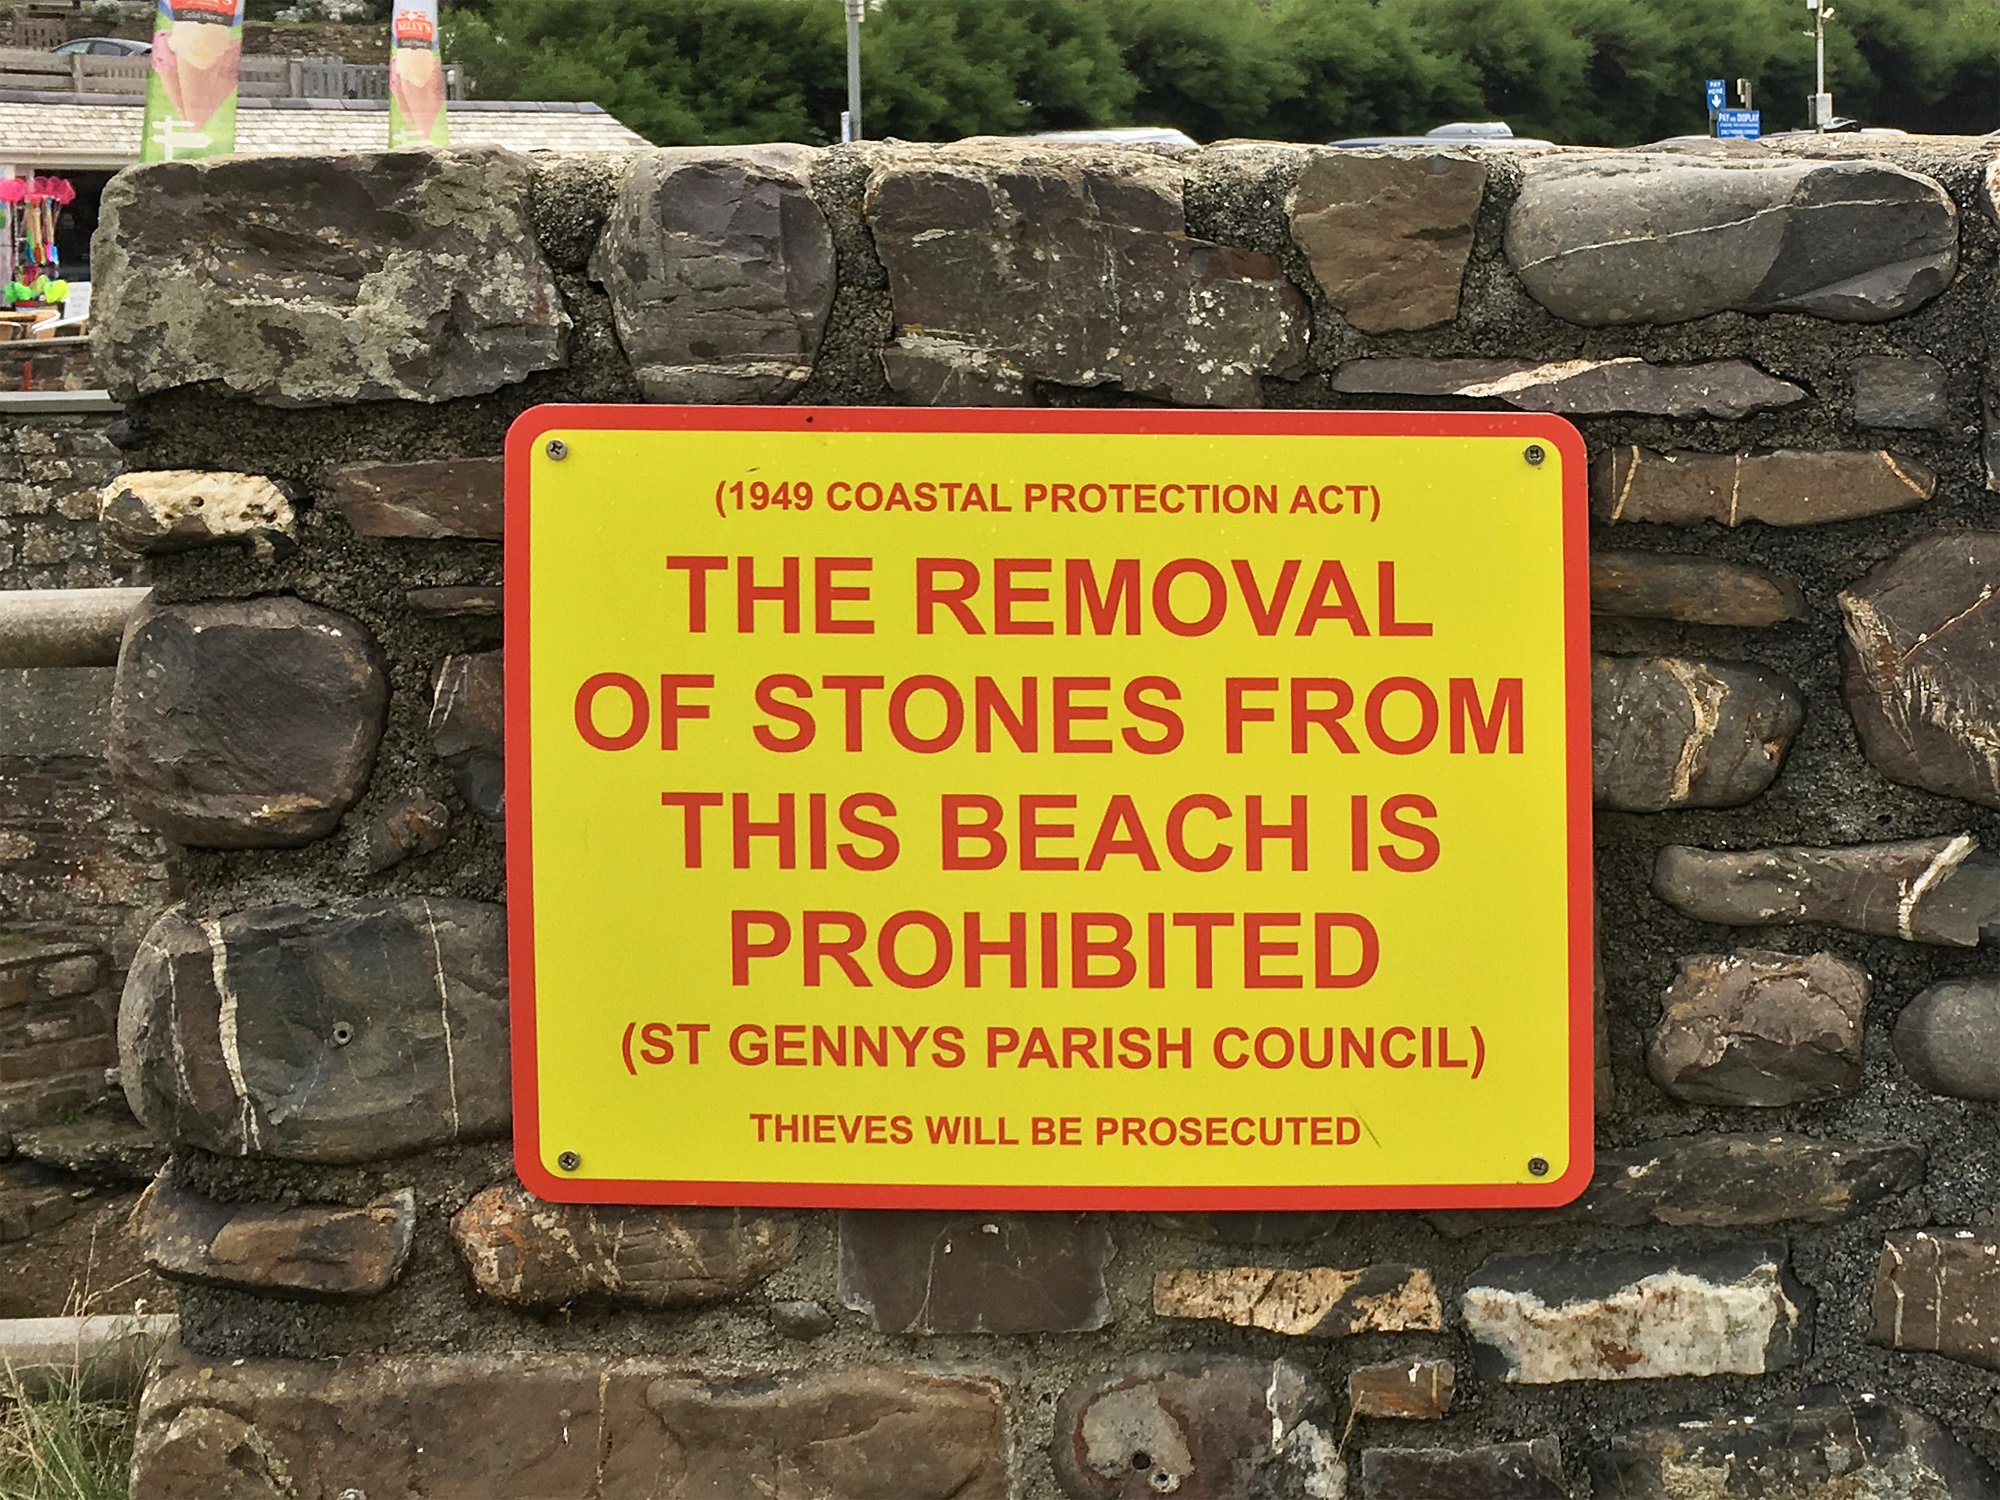 "Authorities traced a man who took pebbles from a beauty spot beach and forced him to travel hundreds of miles to return them or face prosecution. The bizarre incident emerged after complaints that beach visitors were being ""aggressively"" threatened with prosecution for taking stones home at Crackington Haven, Cornwall. Theft had become so common there that several signs were put up to warn it is illegal the parish council said. Visitors could face a fine of up to ??1,000 as removal of stones leaves the area exposed to erosion the clerk for St Gennys Parish Council warned. But critics claimed the signs were heavy handed and spoiled the beach. St Gennys parish clerk Barry Jordan said the signs were installed in late July due to many complaints to the council about stones being removed adding that it was illegal under The Coastal Protection Act 1949. In one case the council traced a holiday maker back to his home hundreds of miles away and he drove a carrier bag of stones all the way back to the beach after being threatened with prosecution Mr Jordan said. ""Those who saw the damage of the floods a few years ago know what water can do, take away the pebbles and the haven would be damaged during every storm,"" Mr Jordan said. ""It's a shame that we must have such a problem with stone theft that the beach is now littered with large red and yellow signs threatening prosecution,"" local artist Jen Dixon said. ""They are so darn ugly on our beautiful beach."" Cornwall Council which owns 57 of the county's beaches said it ""strongly urged visitors not to remove stones or sand"". A spokesperson said: ""It may seem harmless but given the many thousands of visitors to Cornwall's beaches every year every stone removed could have an impact on coastal erosion, natural flood defences and wildlife habitats"". SEE STORY BY APEX NEWS - 01392 823144 ---------------------------------------------------- APEX NEWS AND PICTURES NEWS DESK: 01392 823144 PICTURE DESK: 013 PIC: JEN DIXON/APEX 21/08/2018"